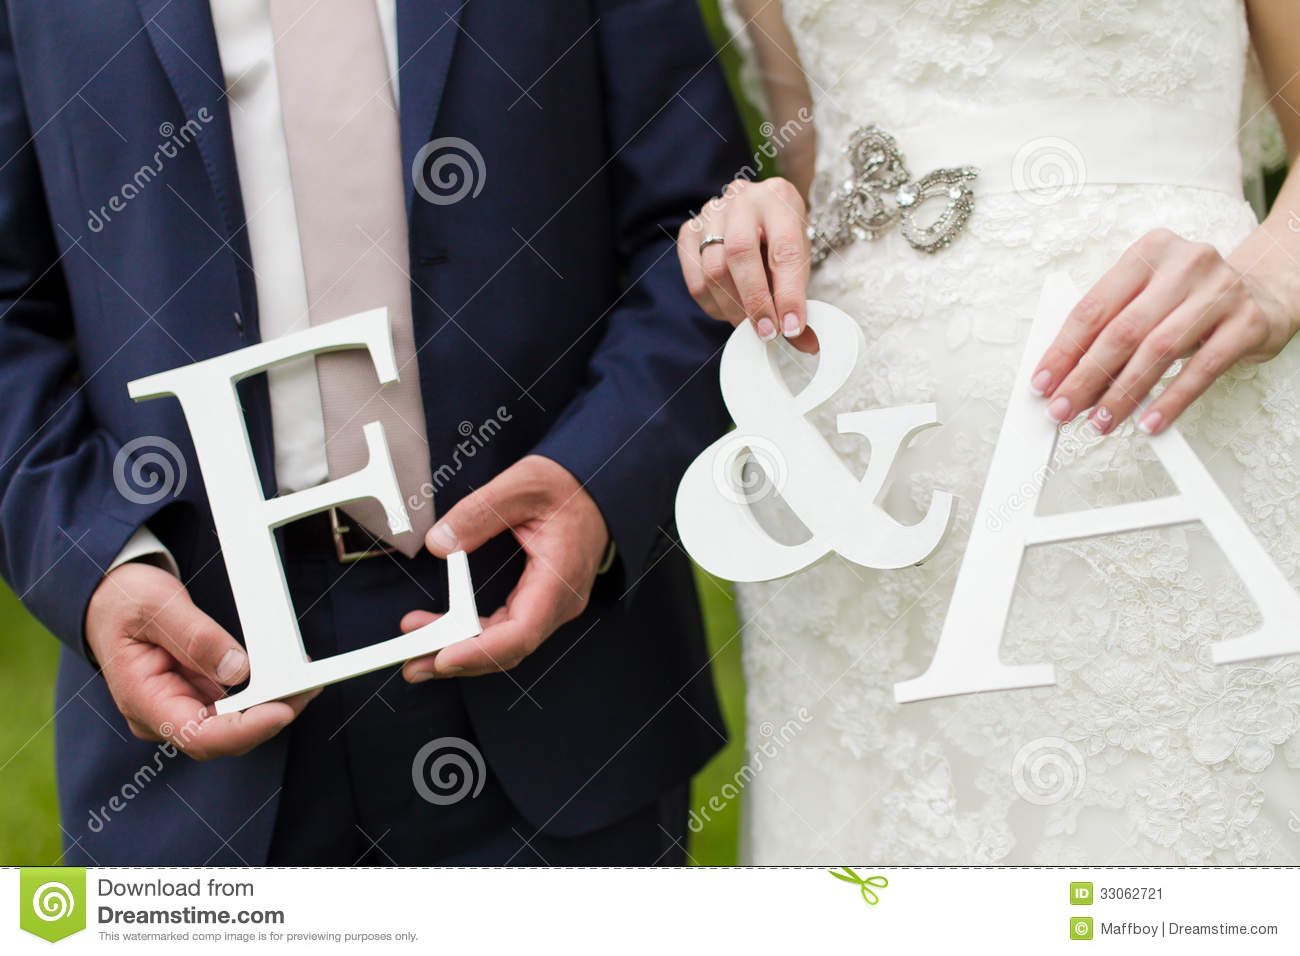 Wedding Letters Stock Image Image Of Hand Bride Decor 33062721